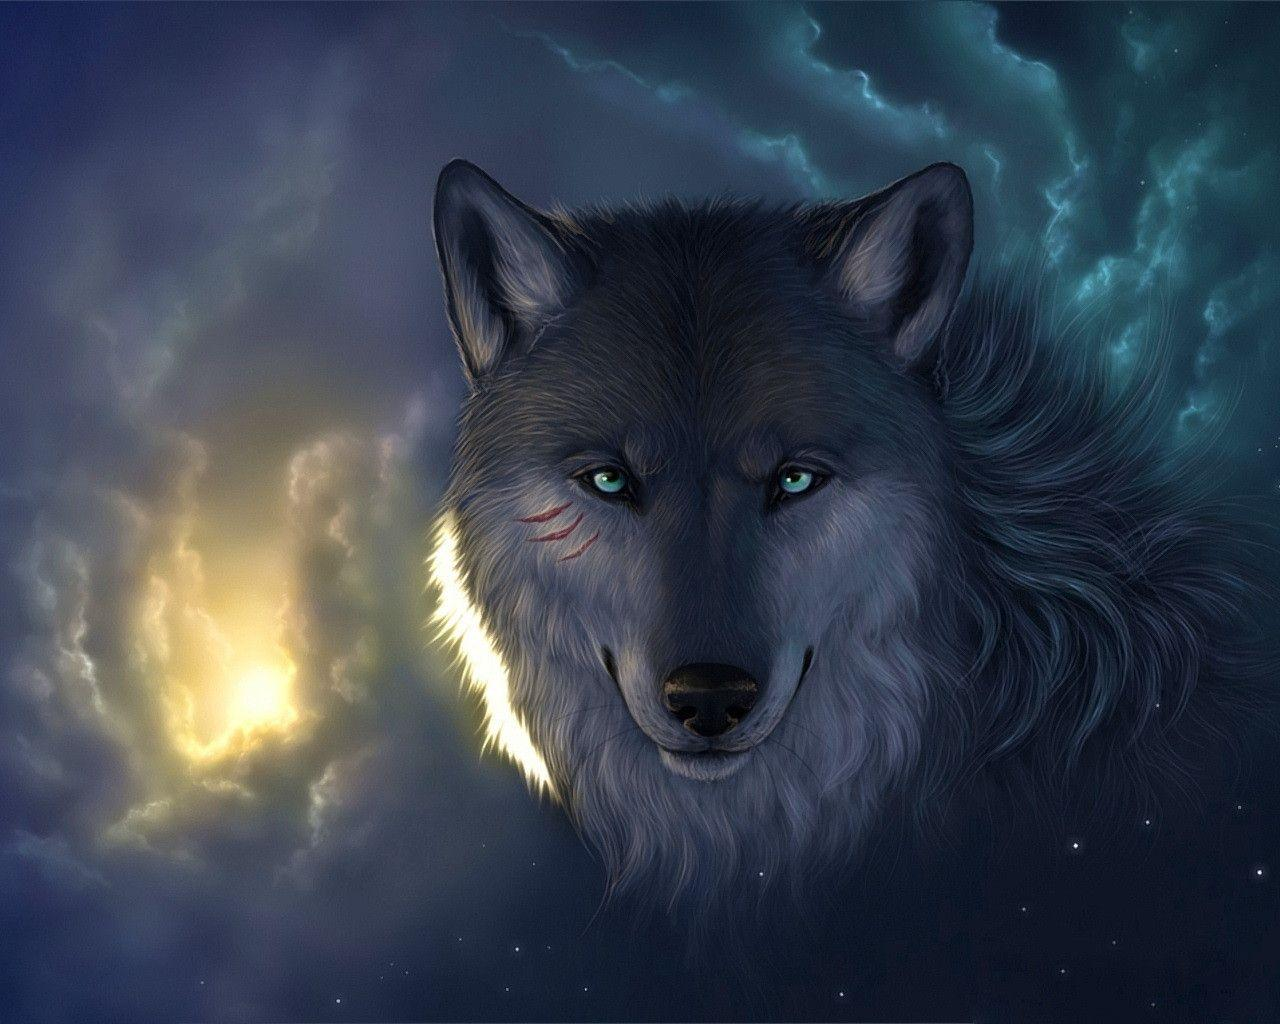 Cool Wolf Backgrounds 10818 Hd Wallpapers in Animals